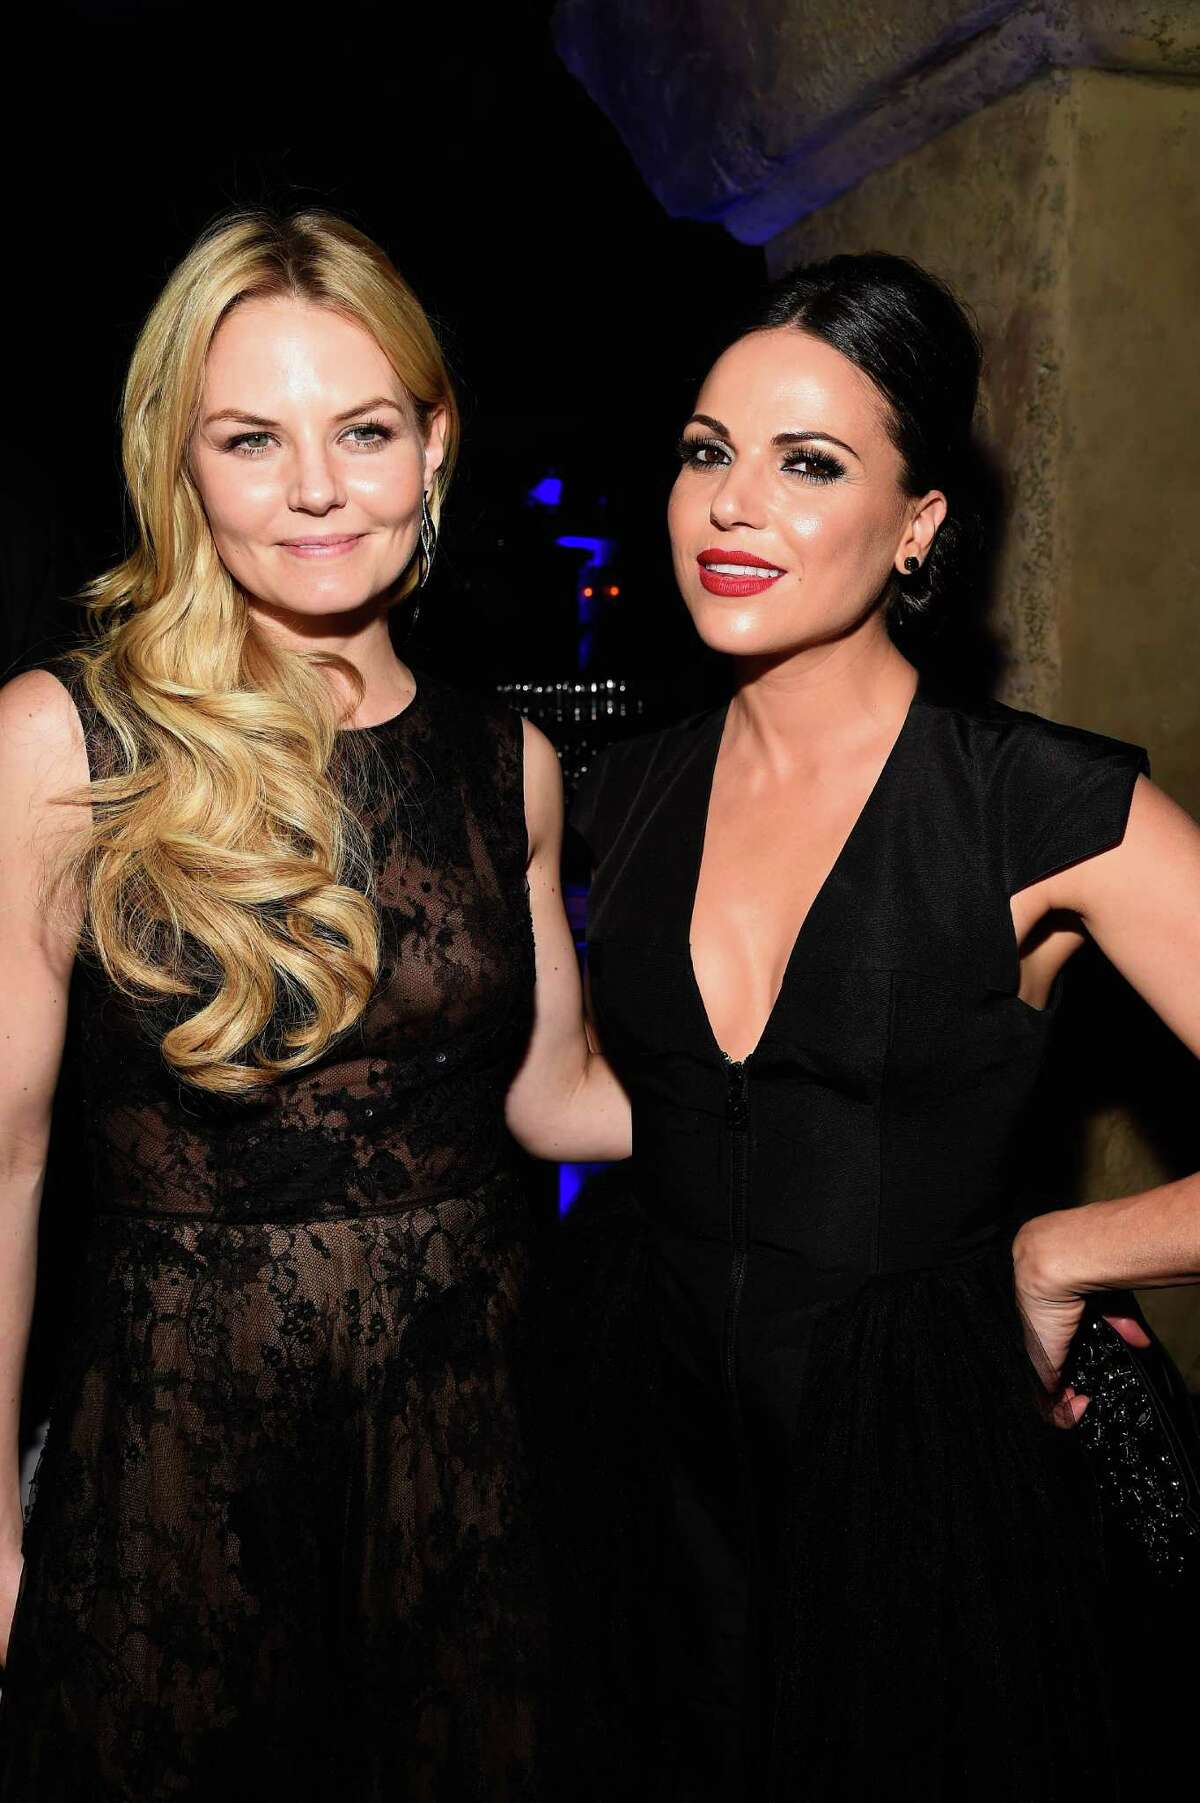 """Actors Jennifer Morrison and Lana Parrilla attend the Screening Of ABC's """"Once Upon A Time"""" Season 4 after Party at the Roosevelt Hotel on September 21, 2014 in Hollywood, California."""